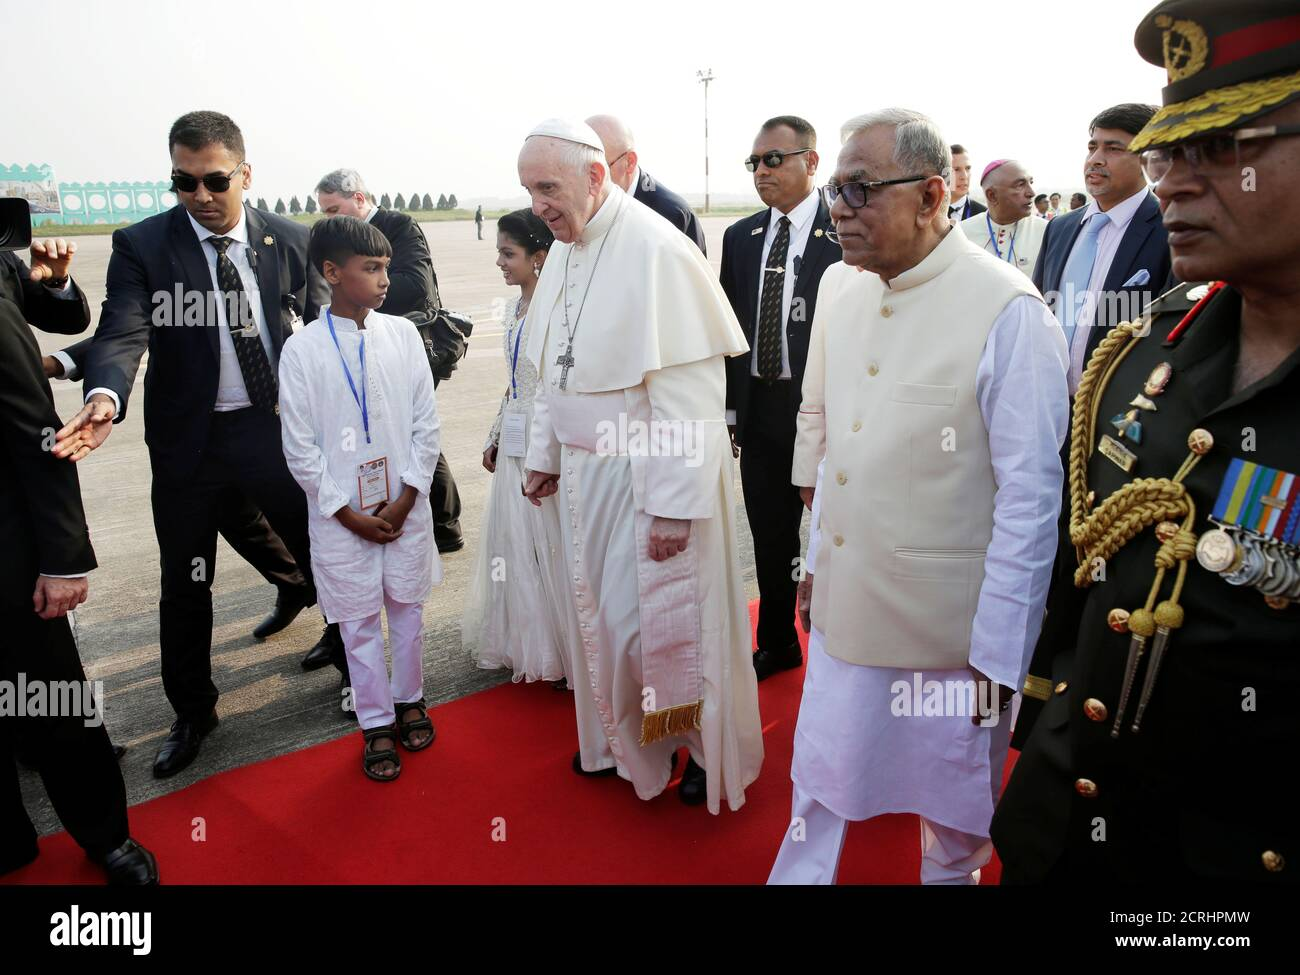 Pope Francis walks with Bangladesh's President Abdul Hamid after arriving at the airport in Dhaka, Bangladesh November 30, 2017.  REUTERS/Max Rossi Stock Photo